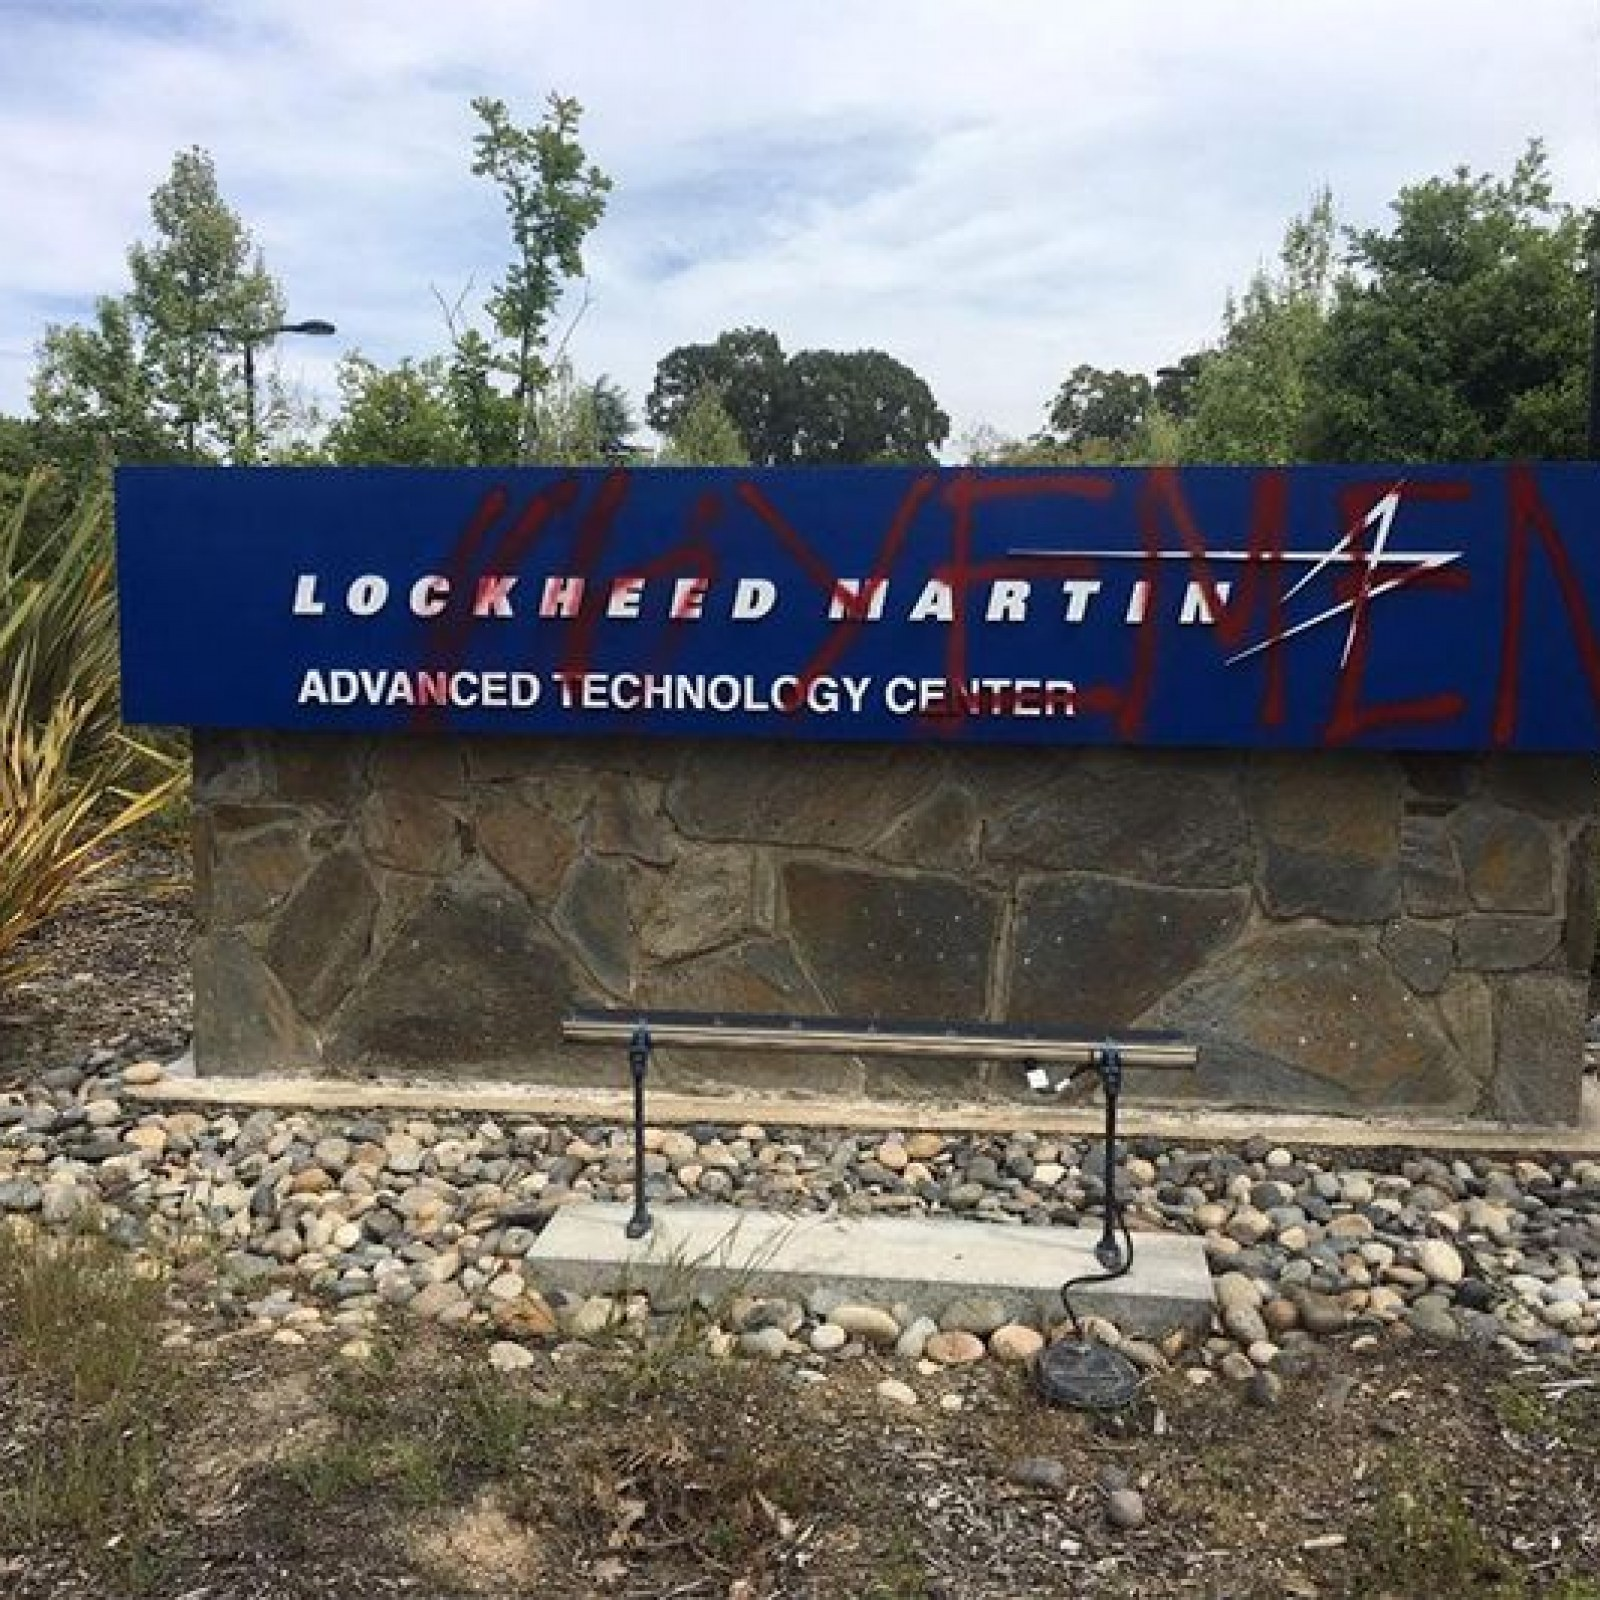 How One Protester Made Sure Lockheed Martin Never Forgets Its Role